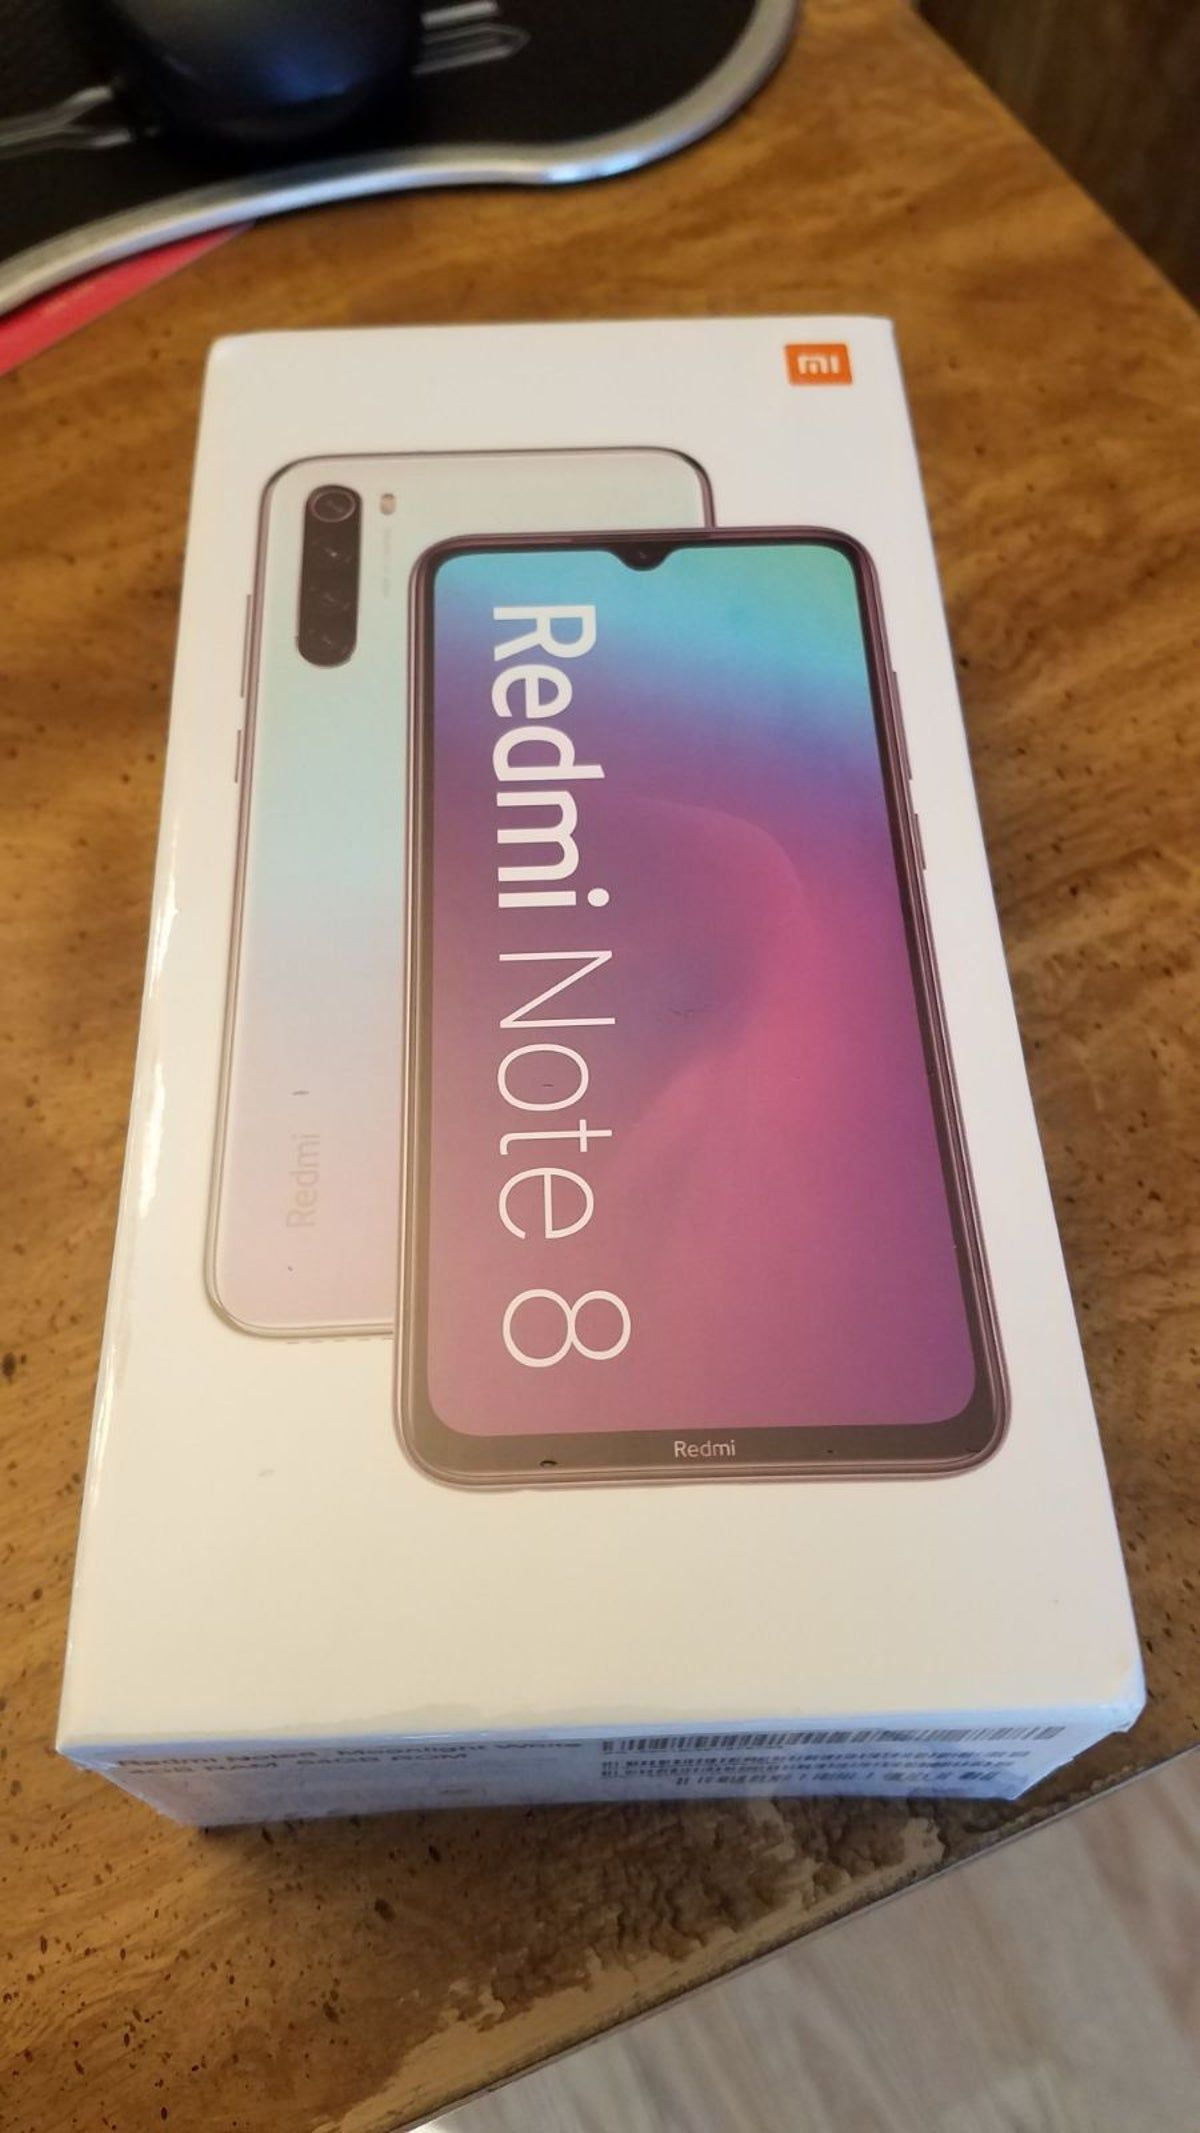 Redmi Note 8 Smartphone 48 Mp Camera Iphone Phone Cases Apple Smartphone Samsung Galaxy Phones